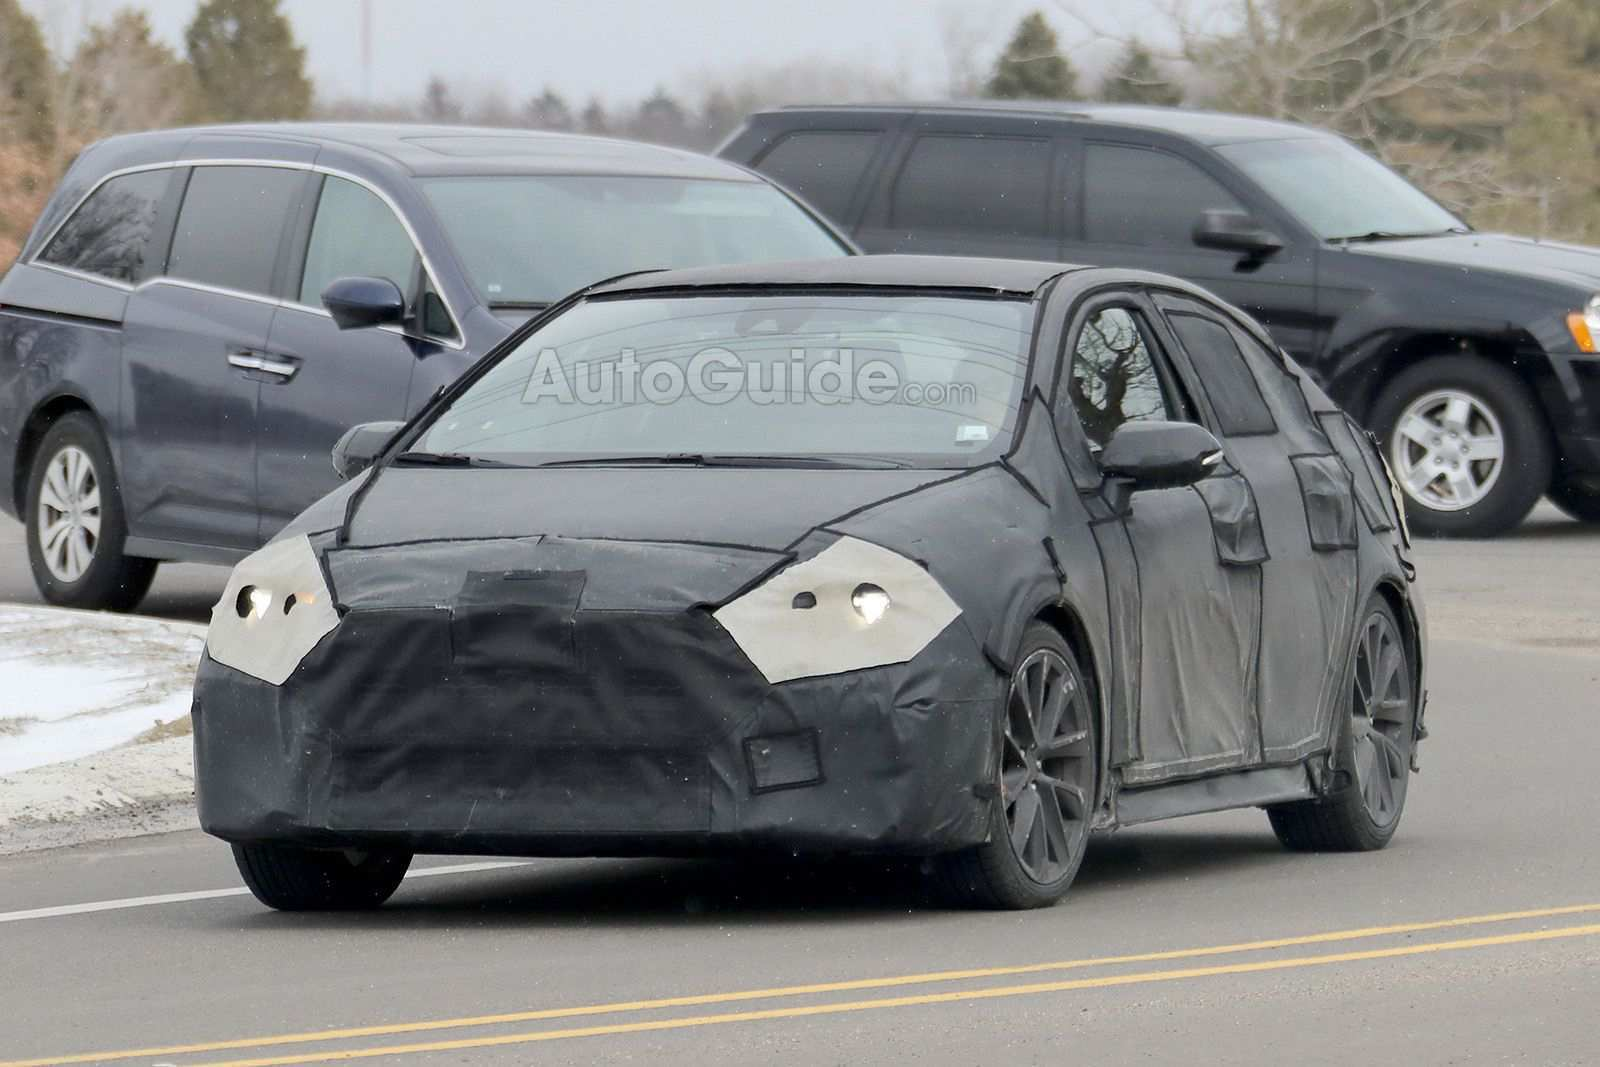 74 Gallery of 2020 Spy Shots Toyota Prius Configurations with 2020 Spy Shots Toyota Prius